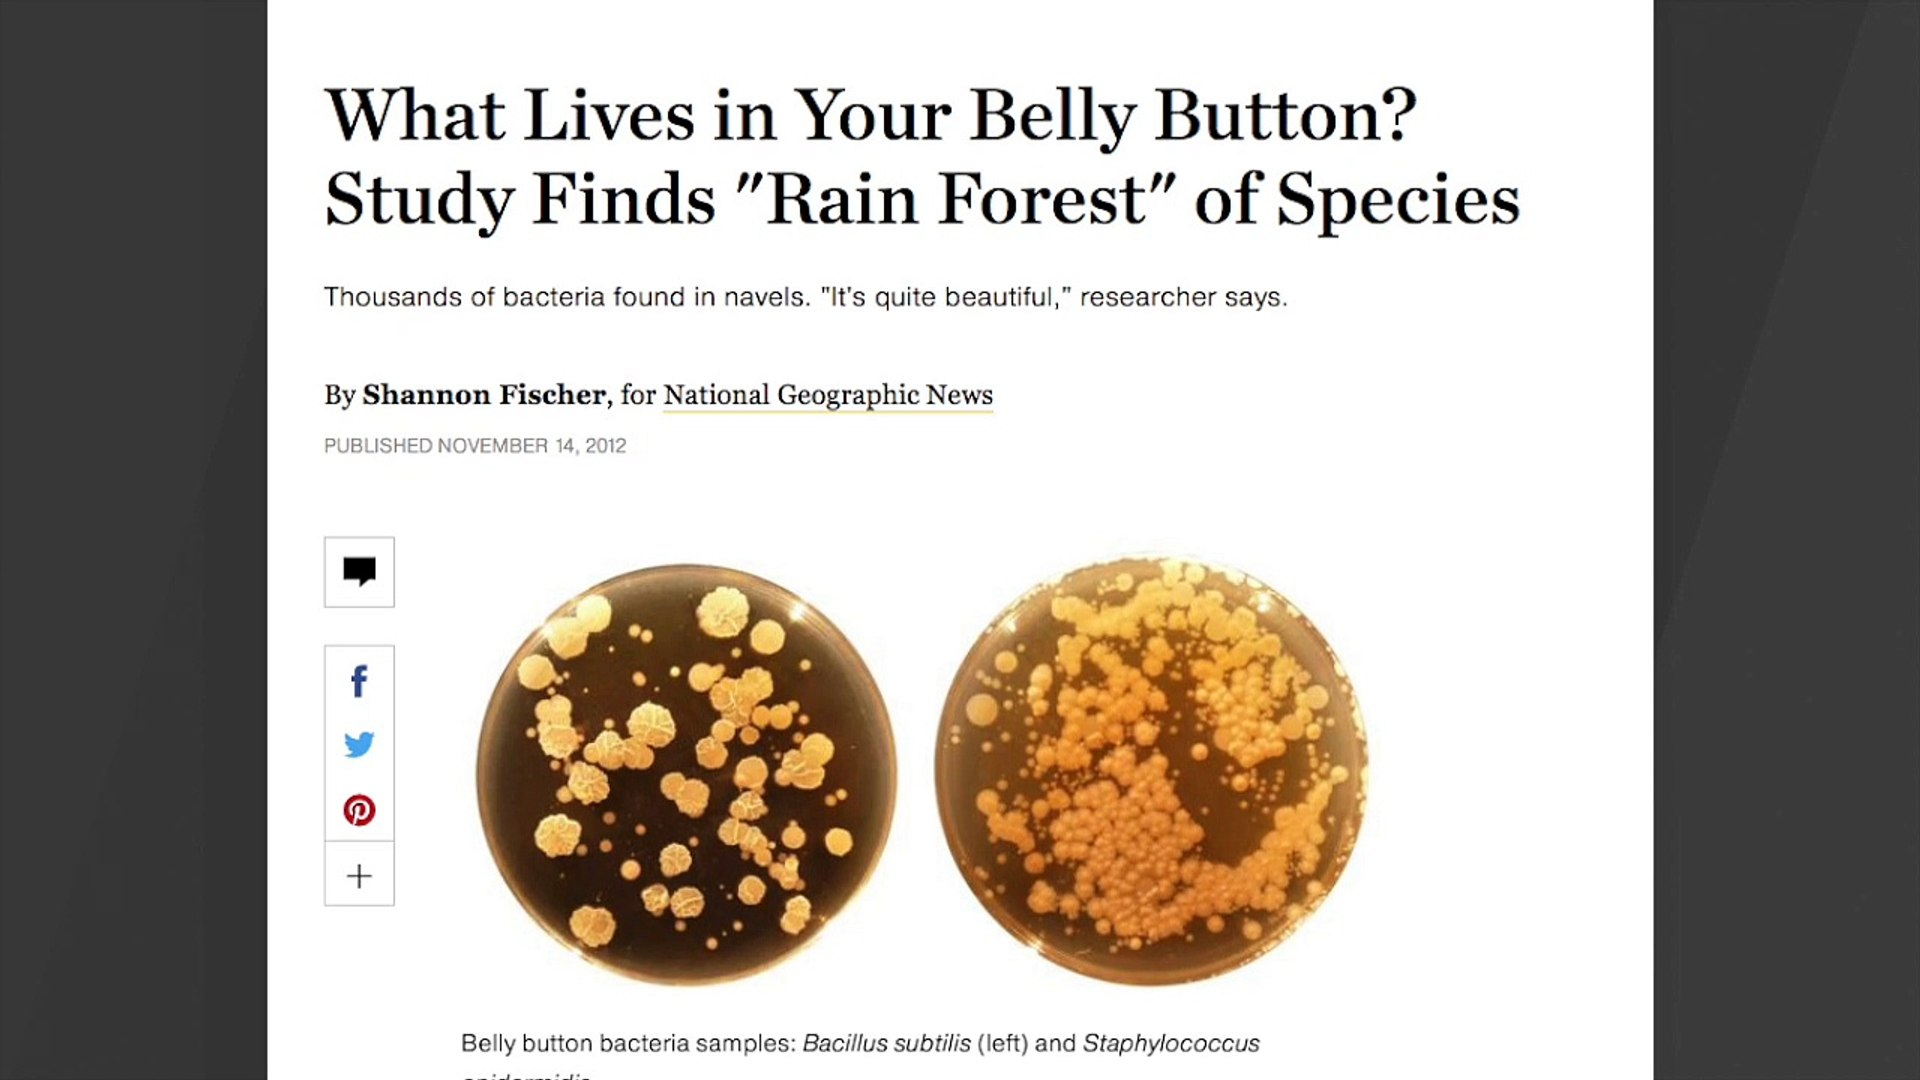 Our Belly Buttons Contain 'Rain Forest' Of Bacteria